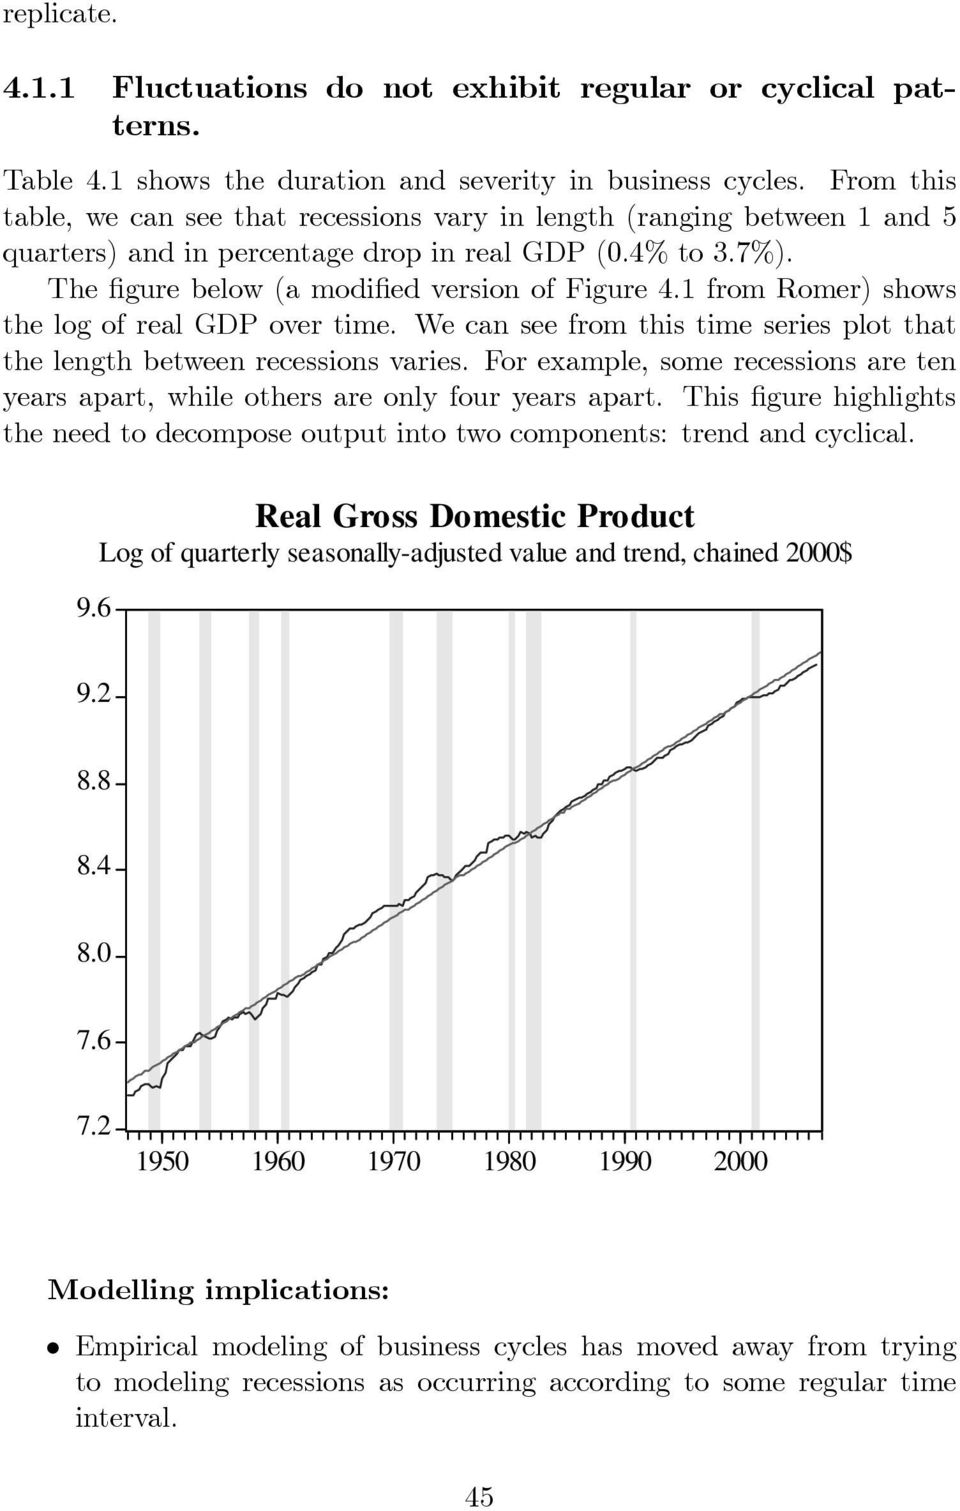 from Romer) shows the log of real GDP over time. We can see from this time series plot that the length between recessions varies.